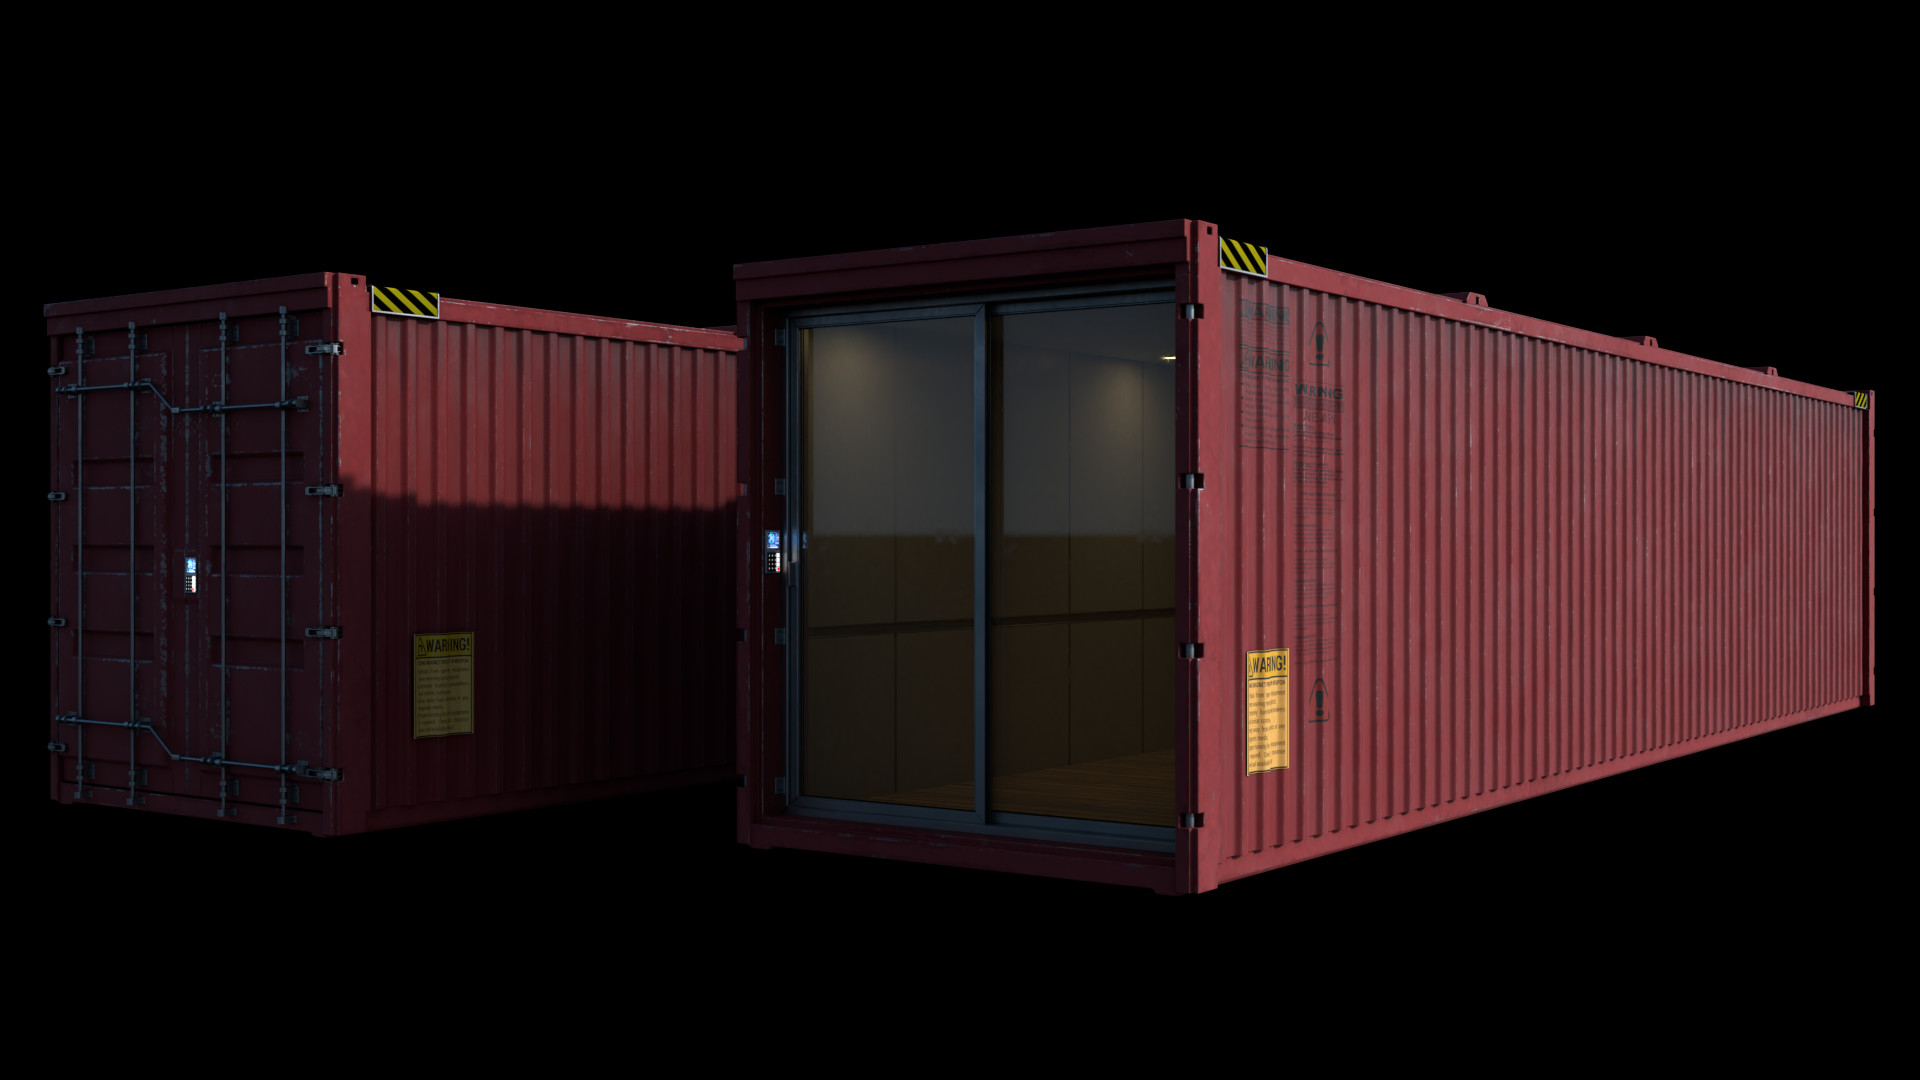 Mateusz wielgus containers